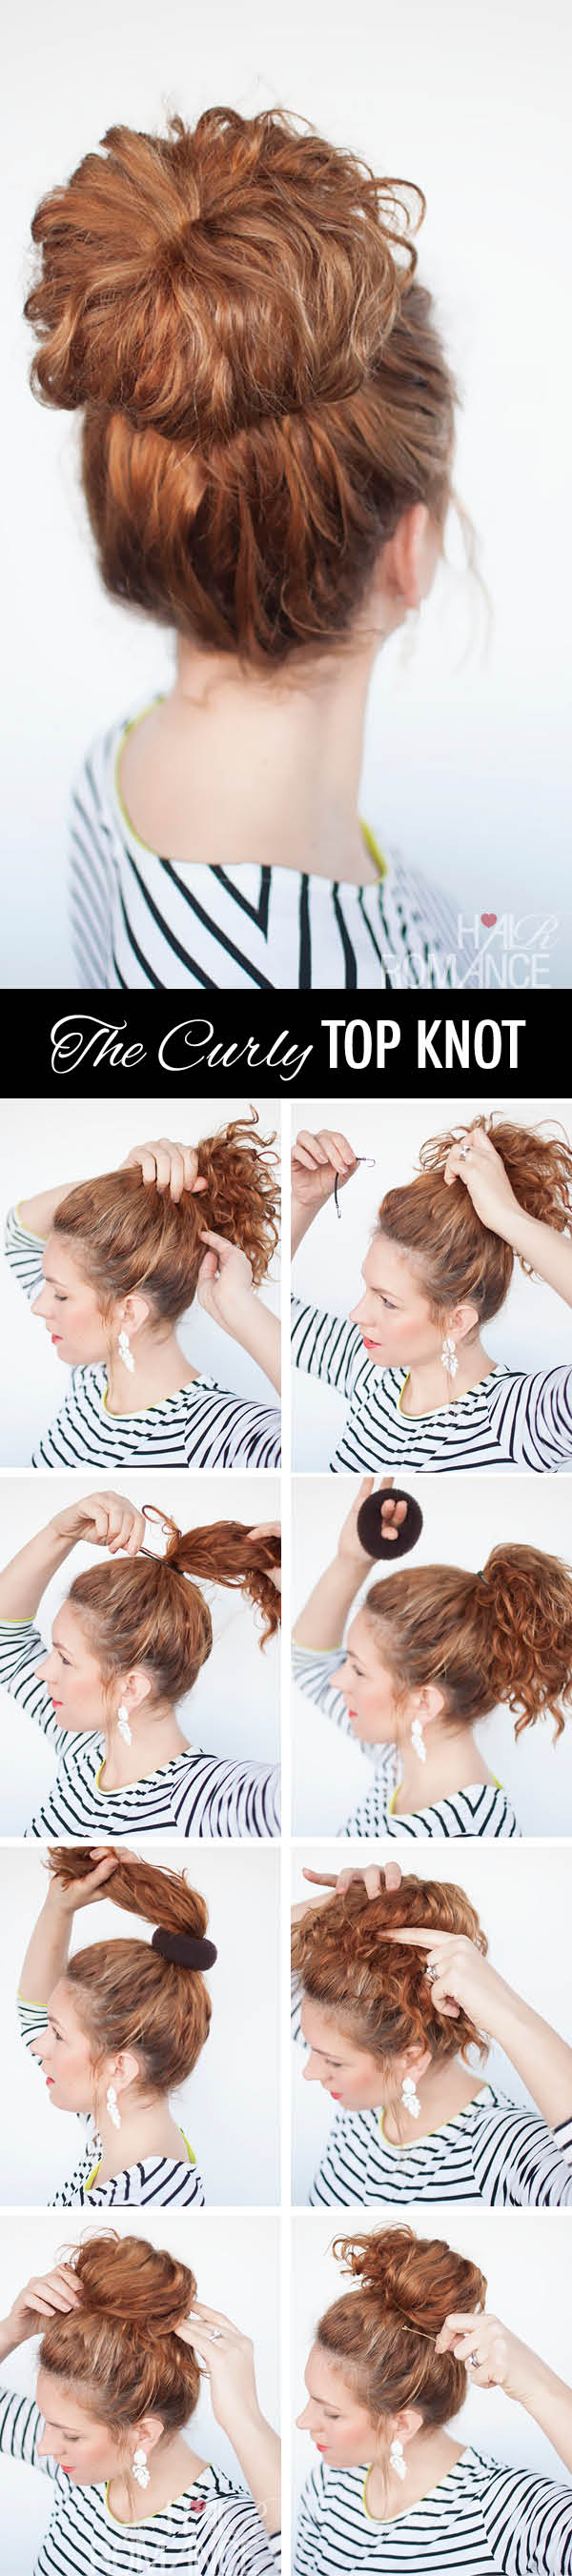 Hair Romance - the curly top knot hairstyle tutorial